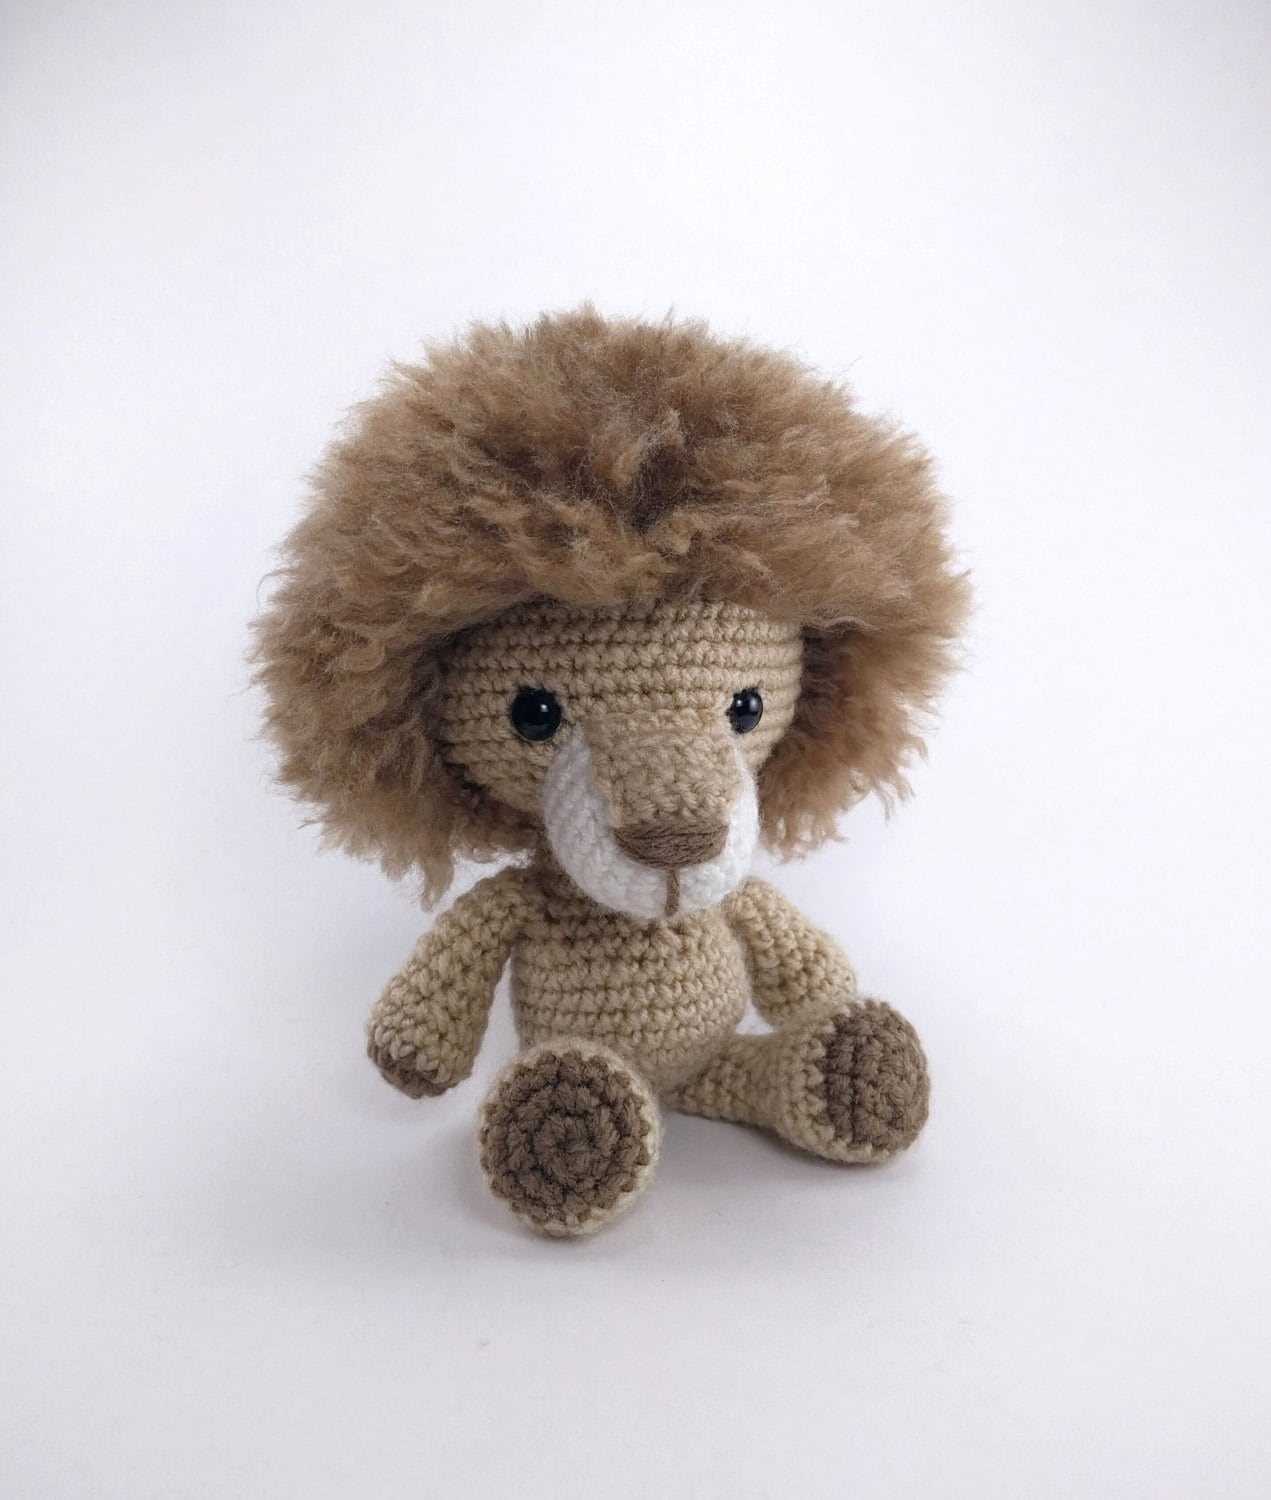 PATTERN: Crochet lion pattern amigurumi lion pattern